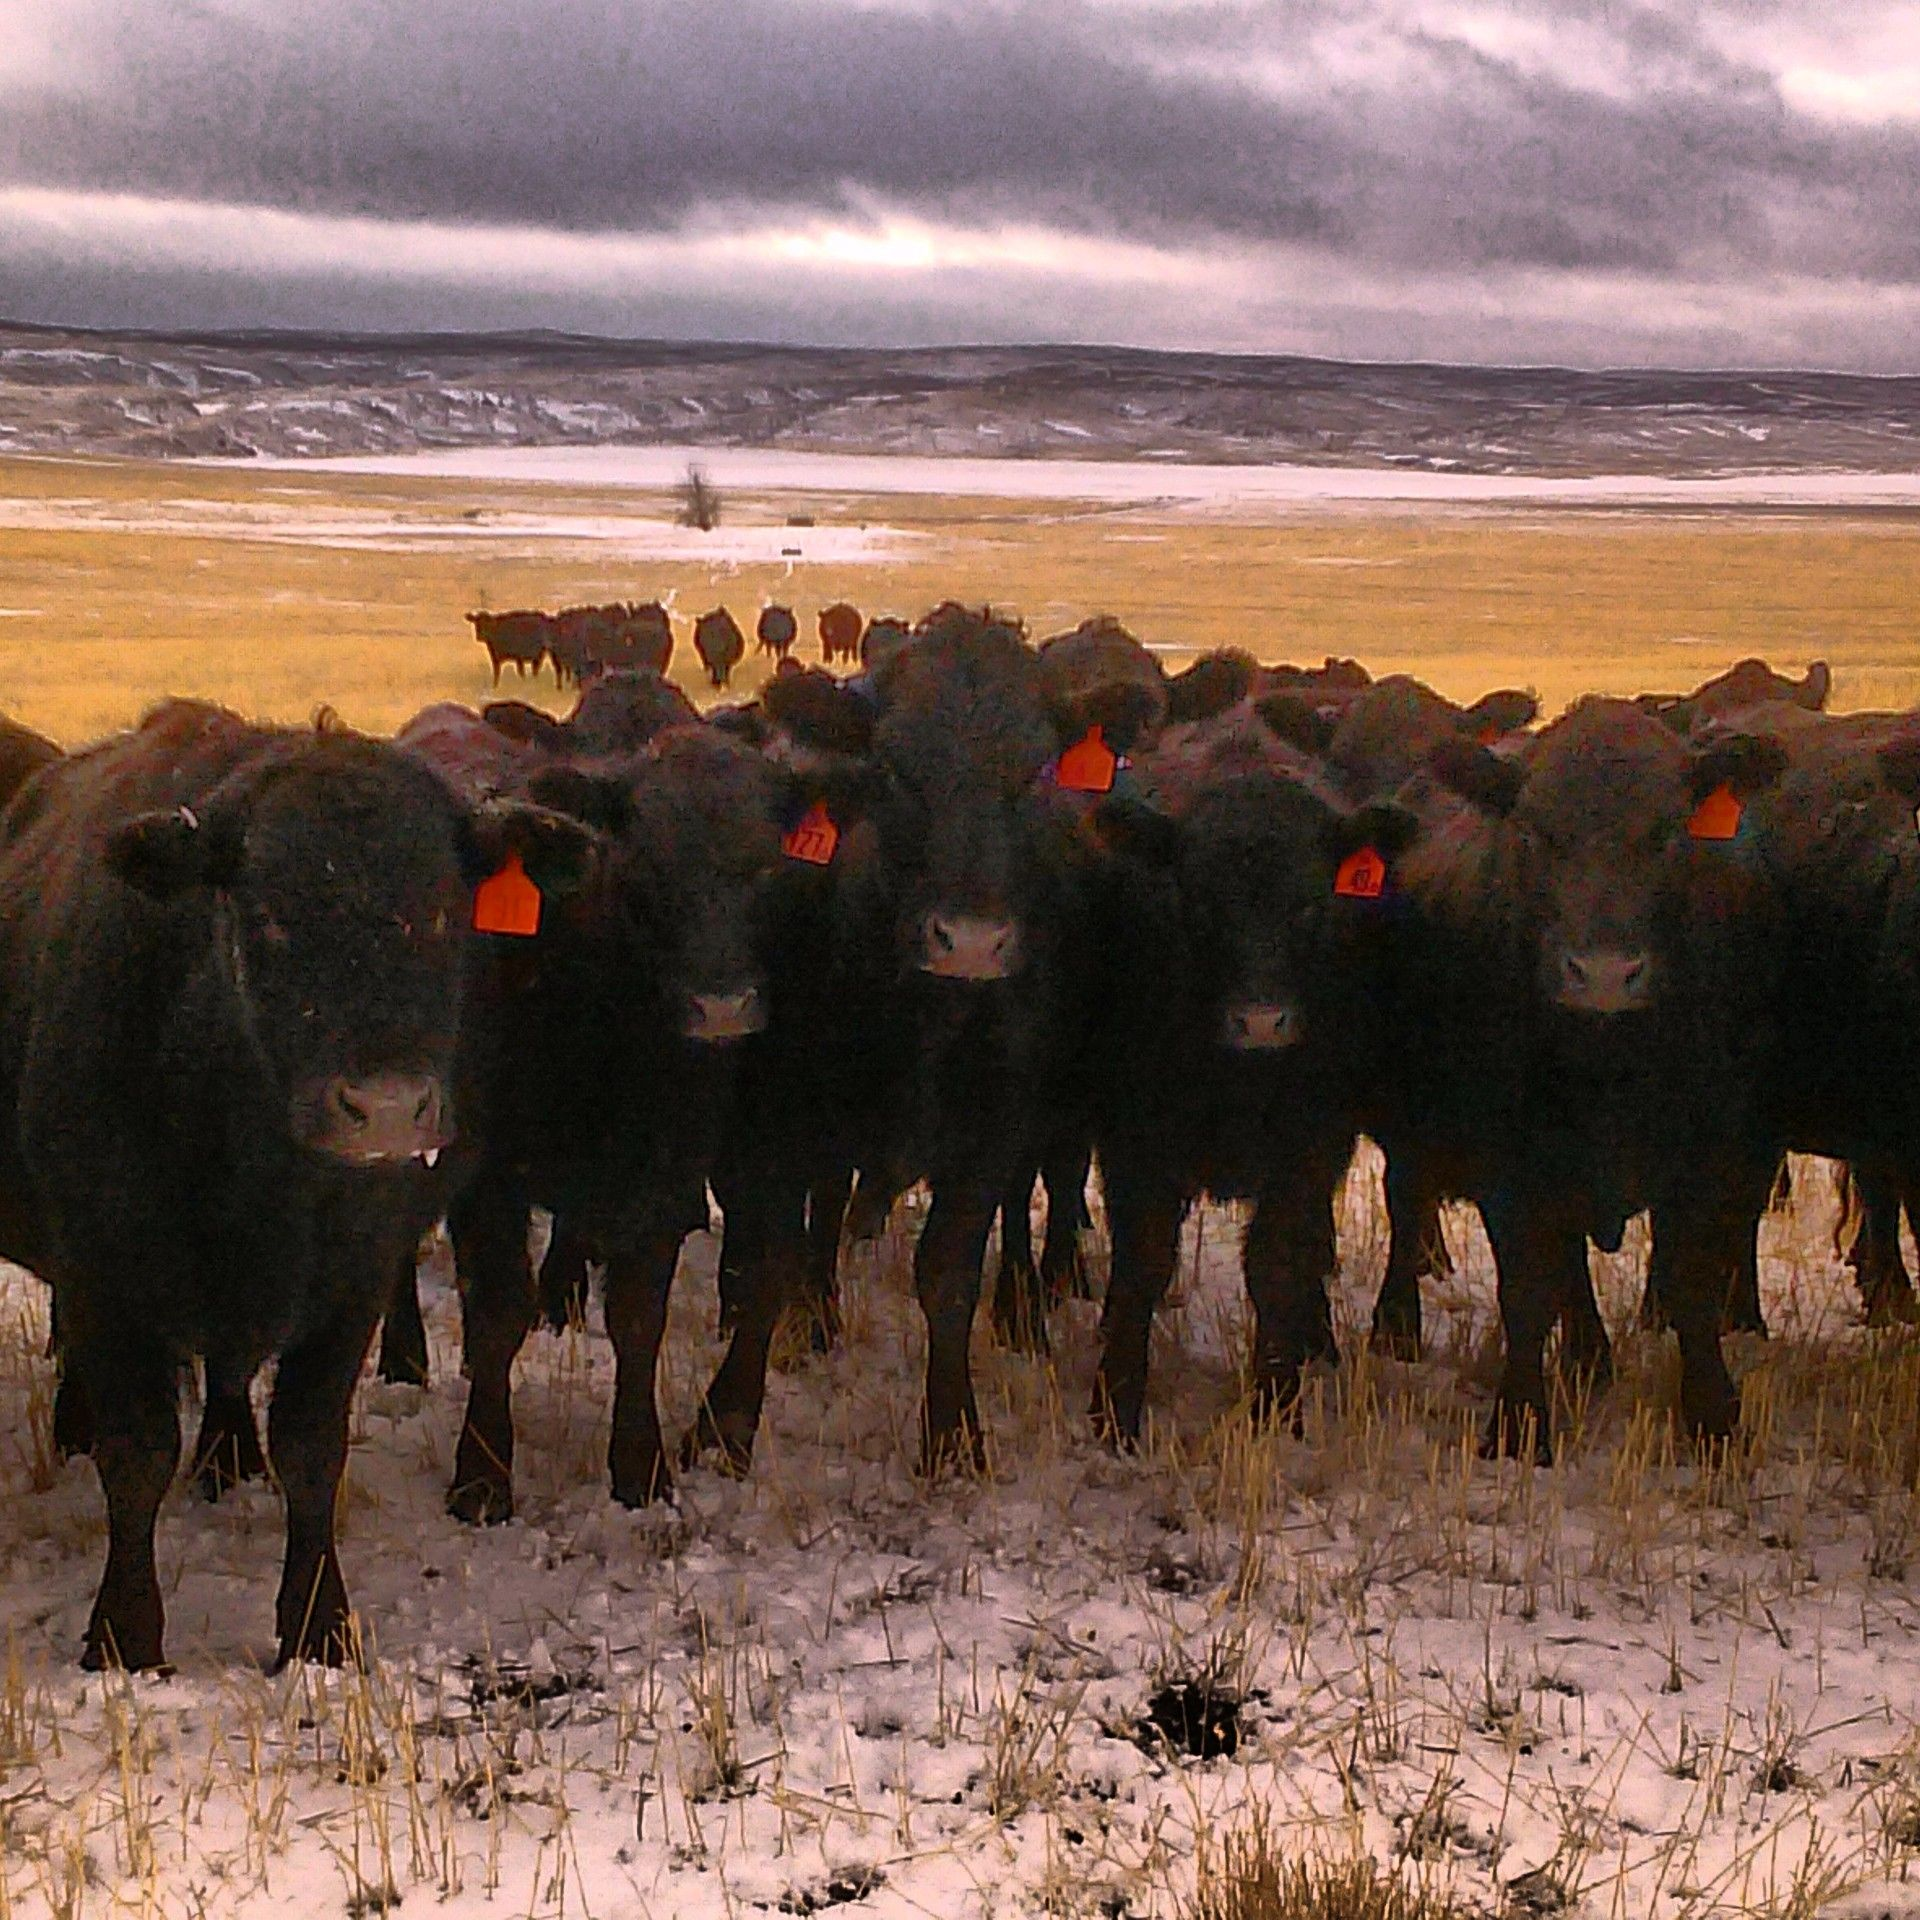 Photo by Colie Moline on the Moline Ranch in Geraldine, MT